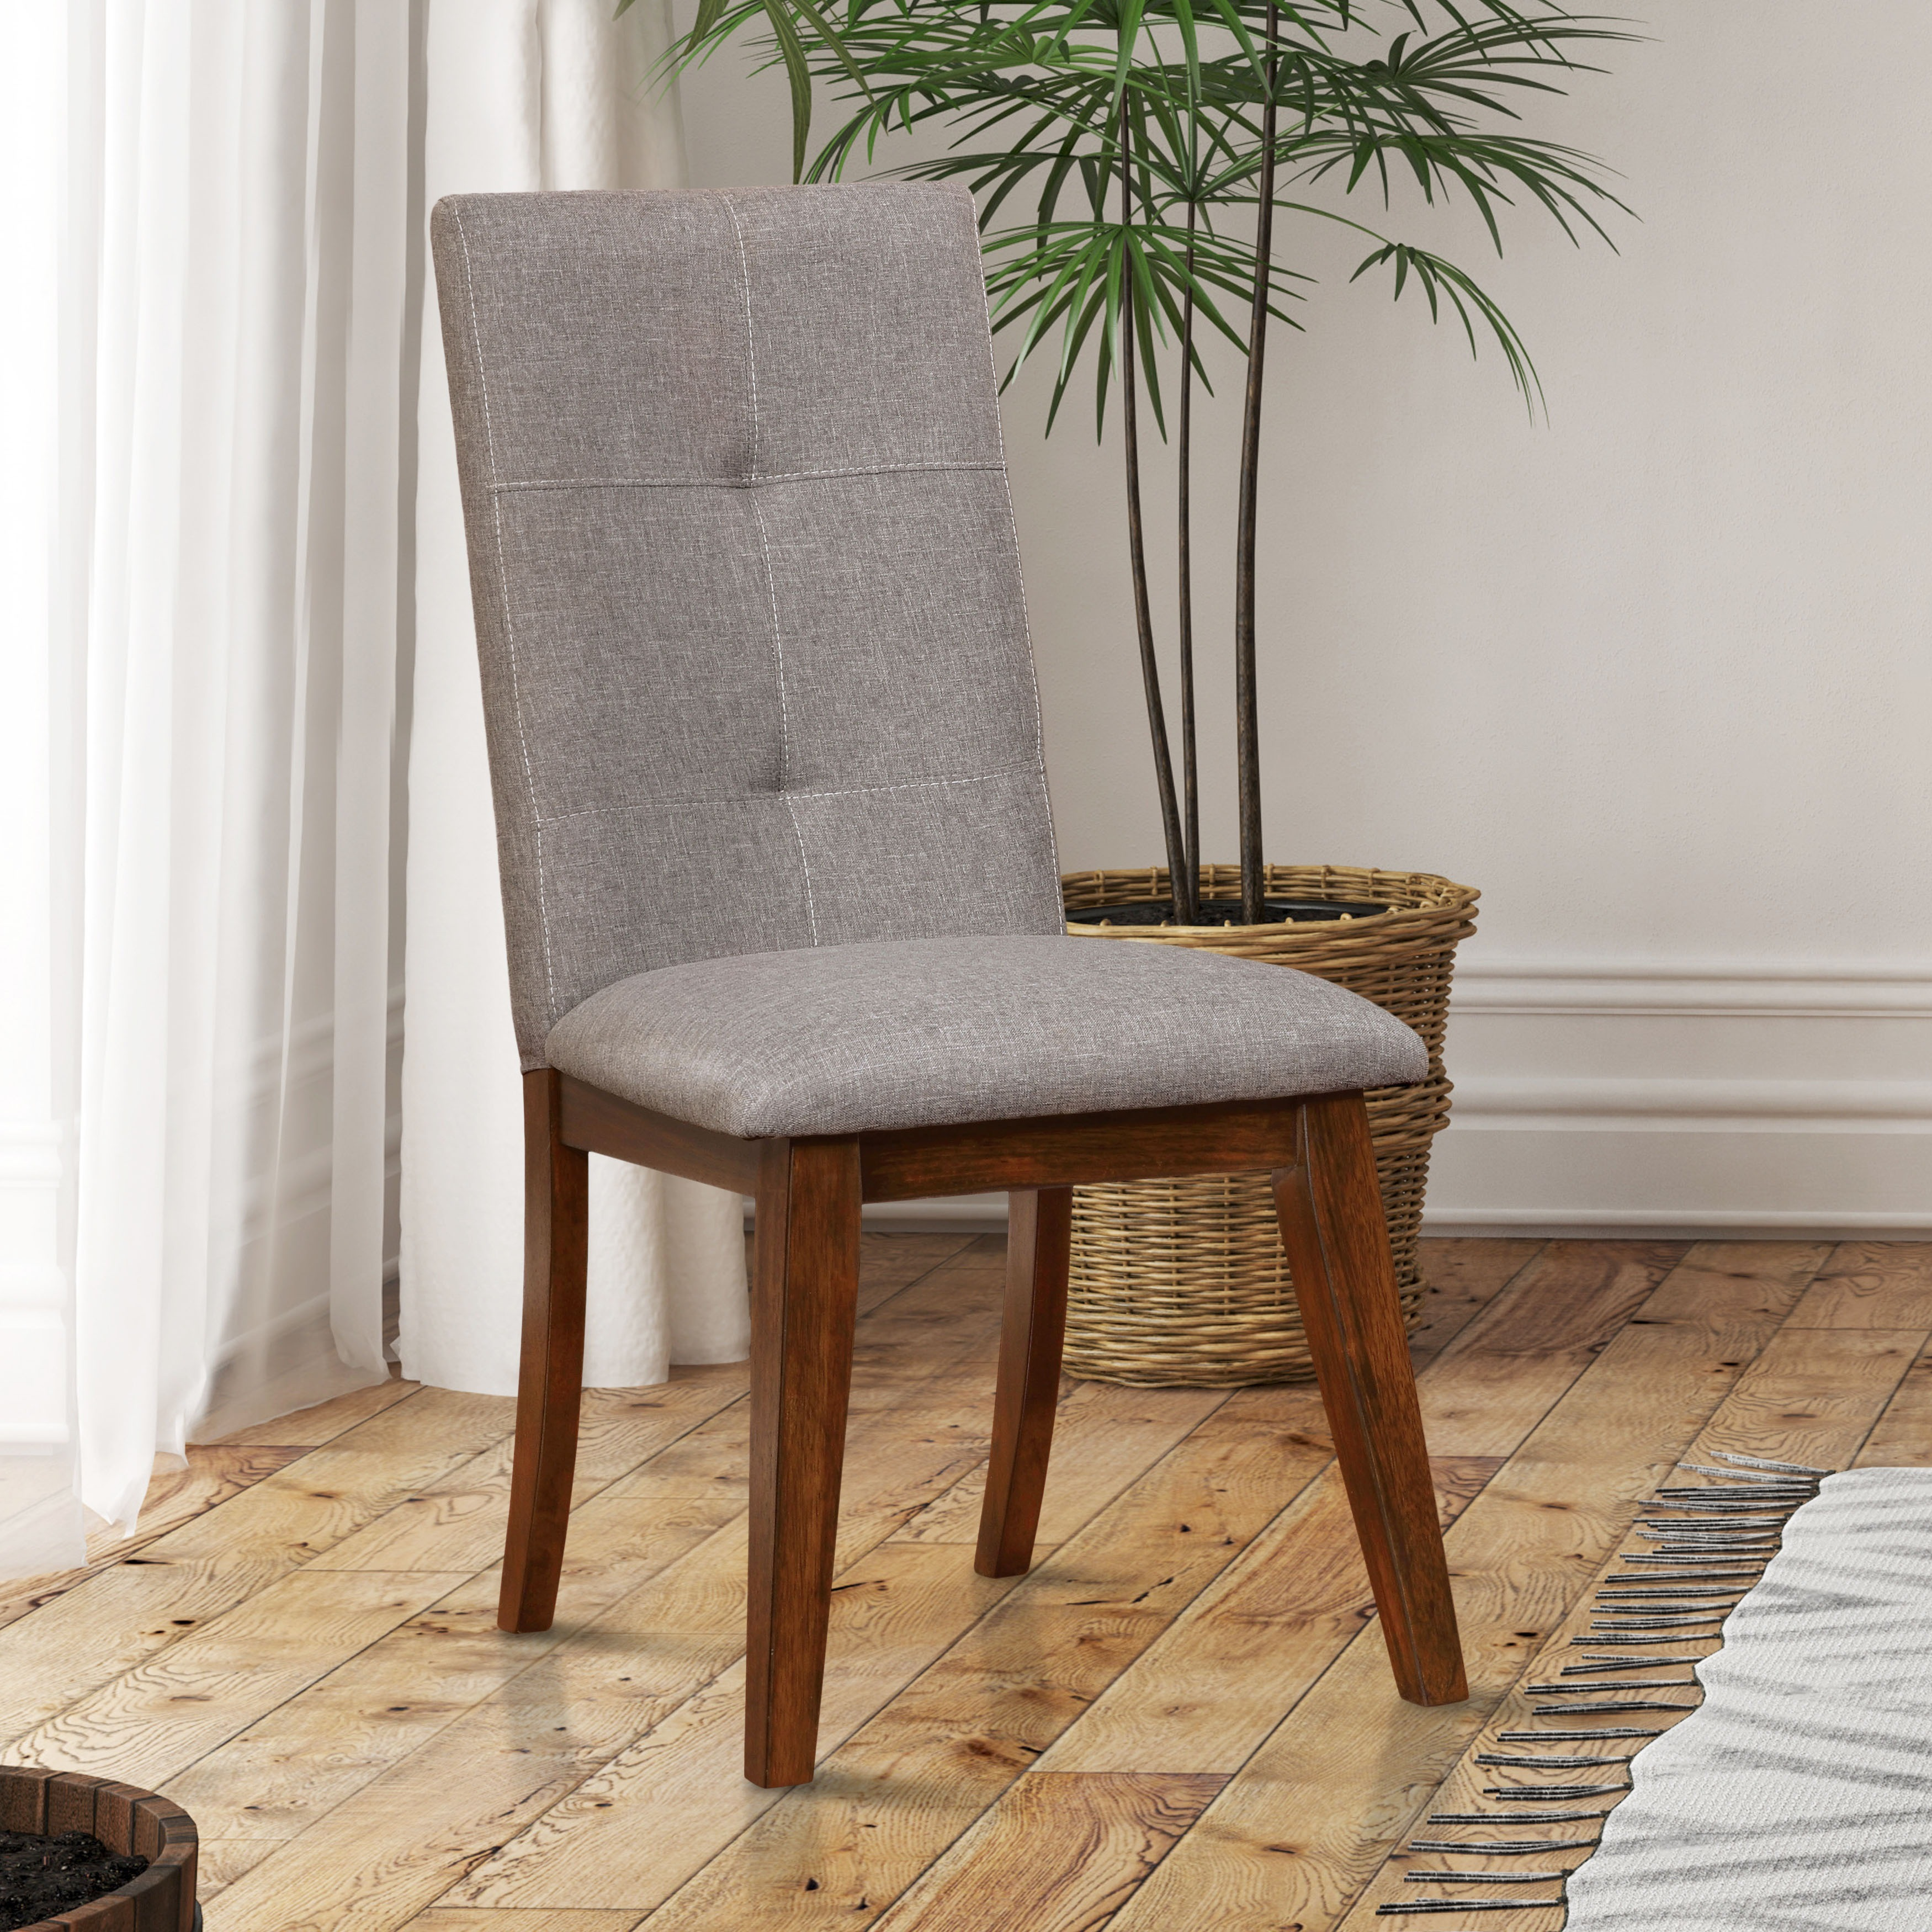 Furniture Of America Yria Midcentury Modern Grey Dining Chairs Set Of 2